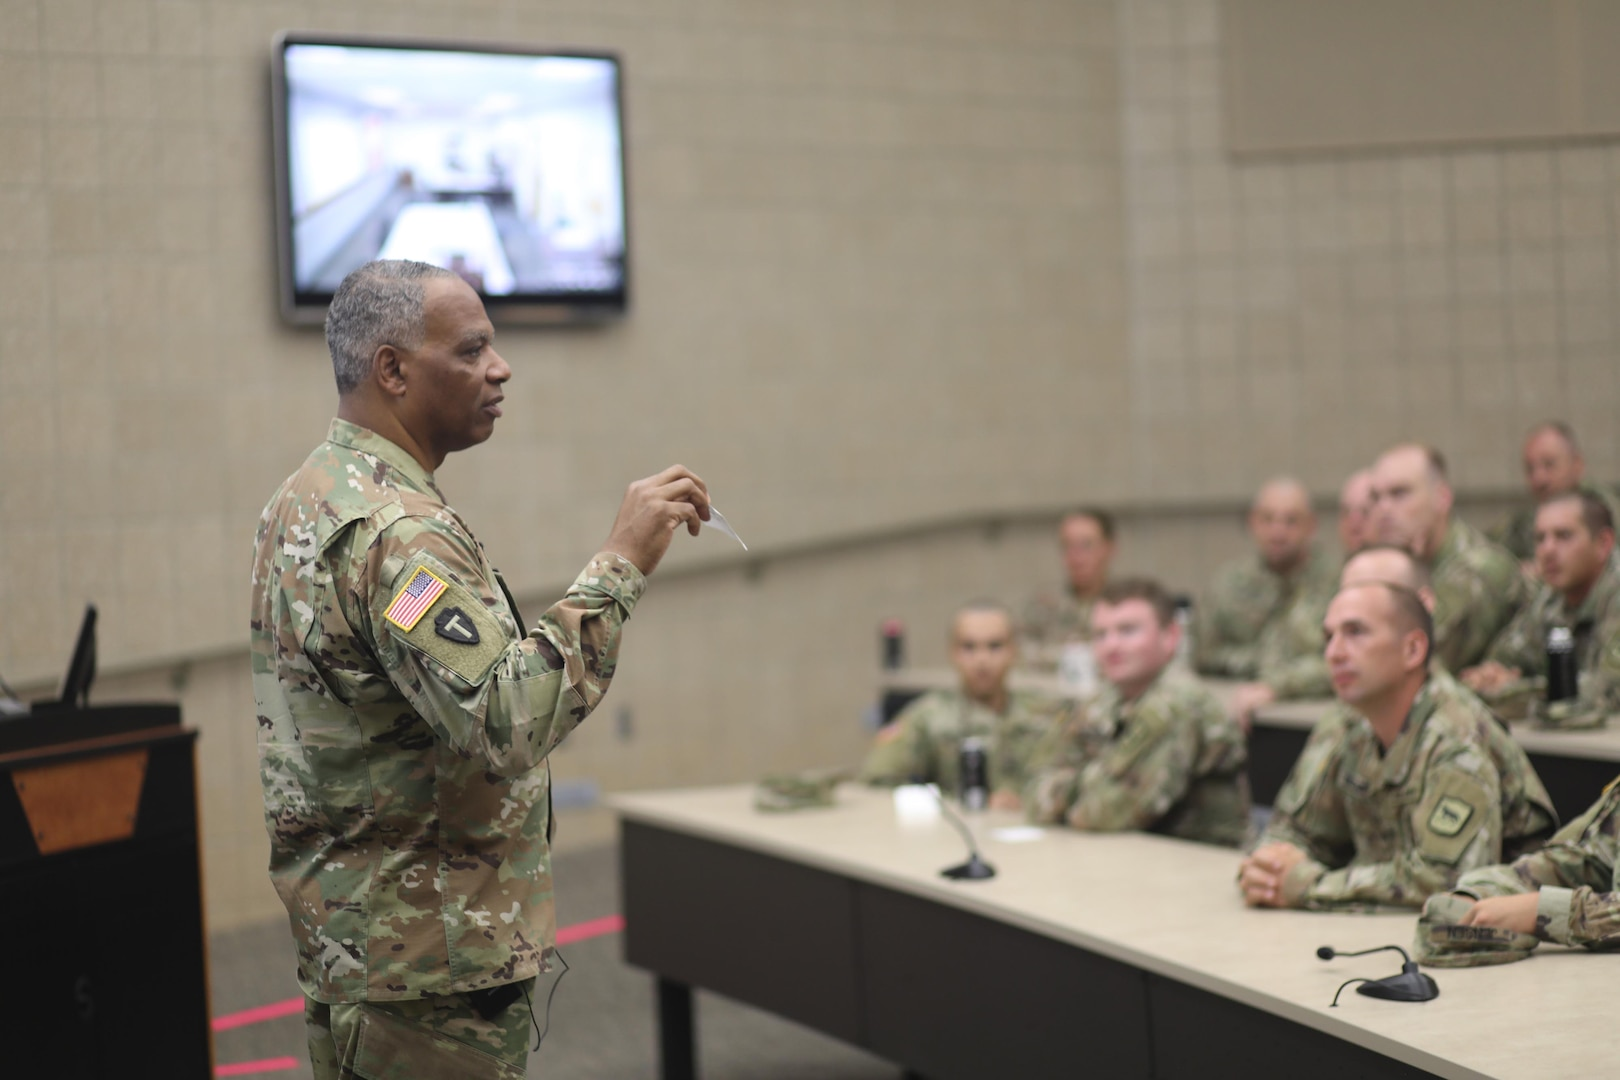 Army National Guard Command Sgt. Maj. John Sampa addresses South Dakota Army National Guard Soldiers at Camp Rapid in Rapid City, S.D., July 11, 2021. Sampa's talked about his initiative to have open conversations about suicide, sexual harassment and sexual assault in the National Guard.